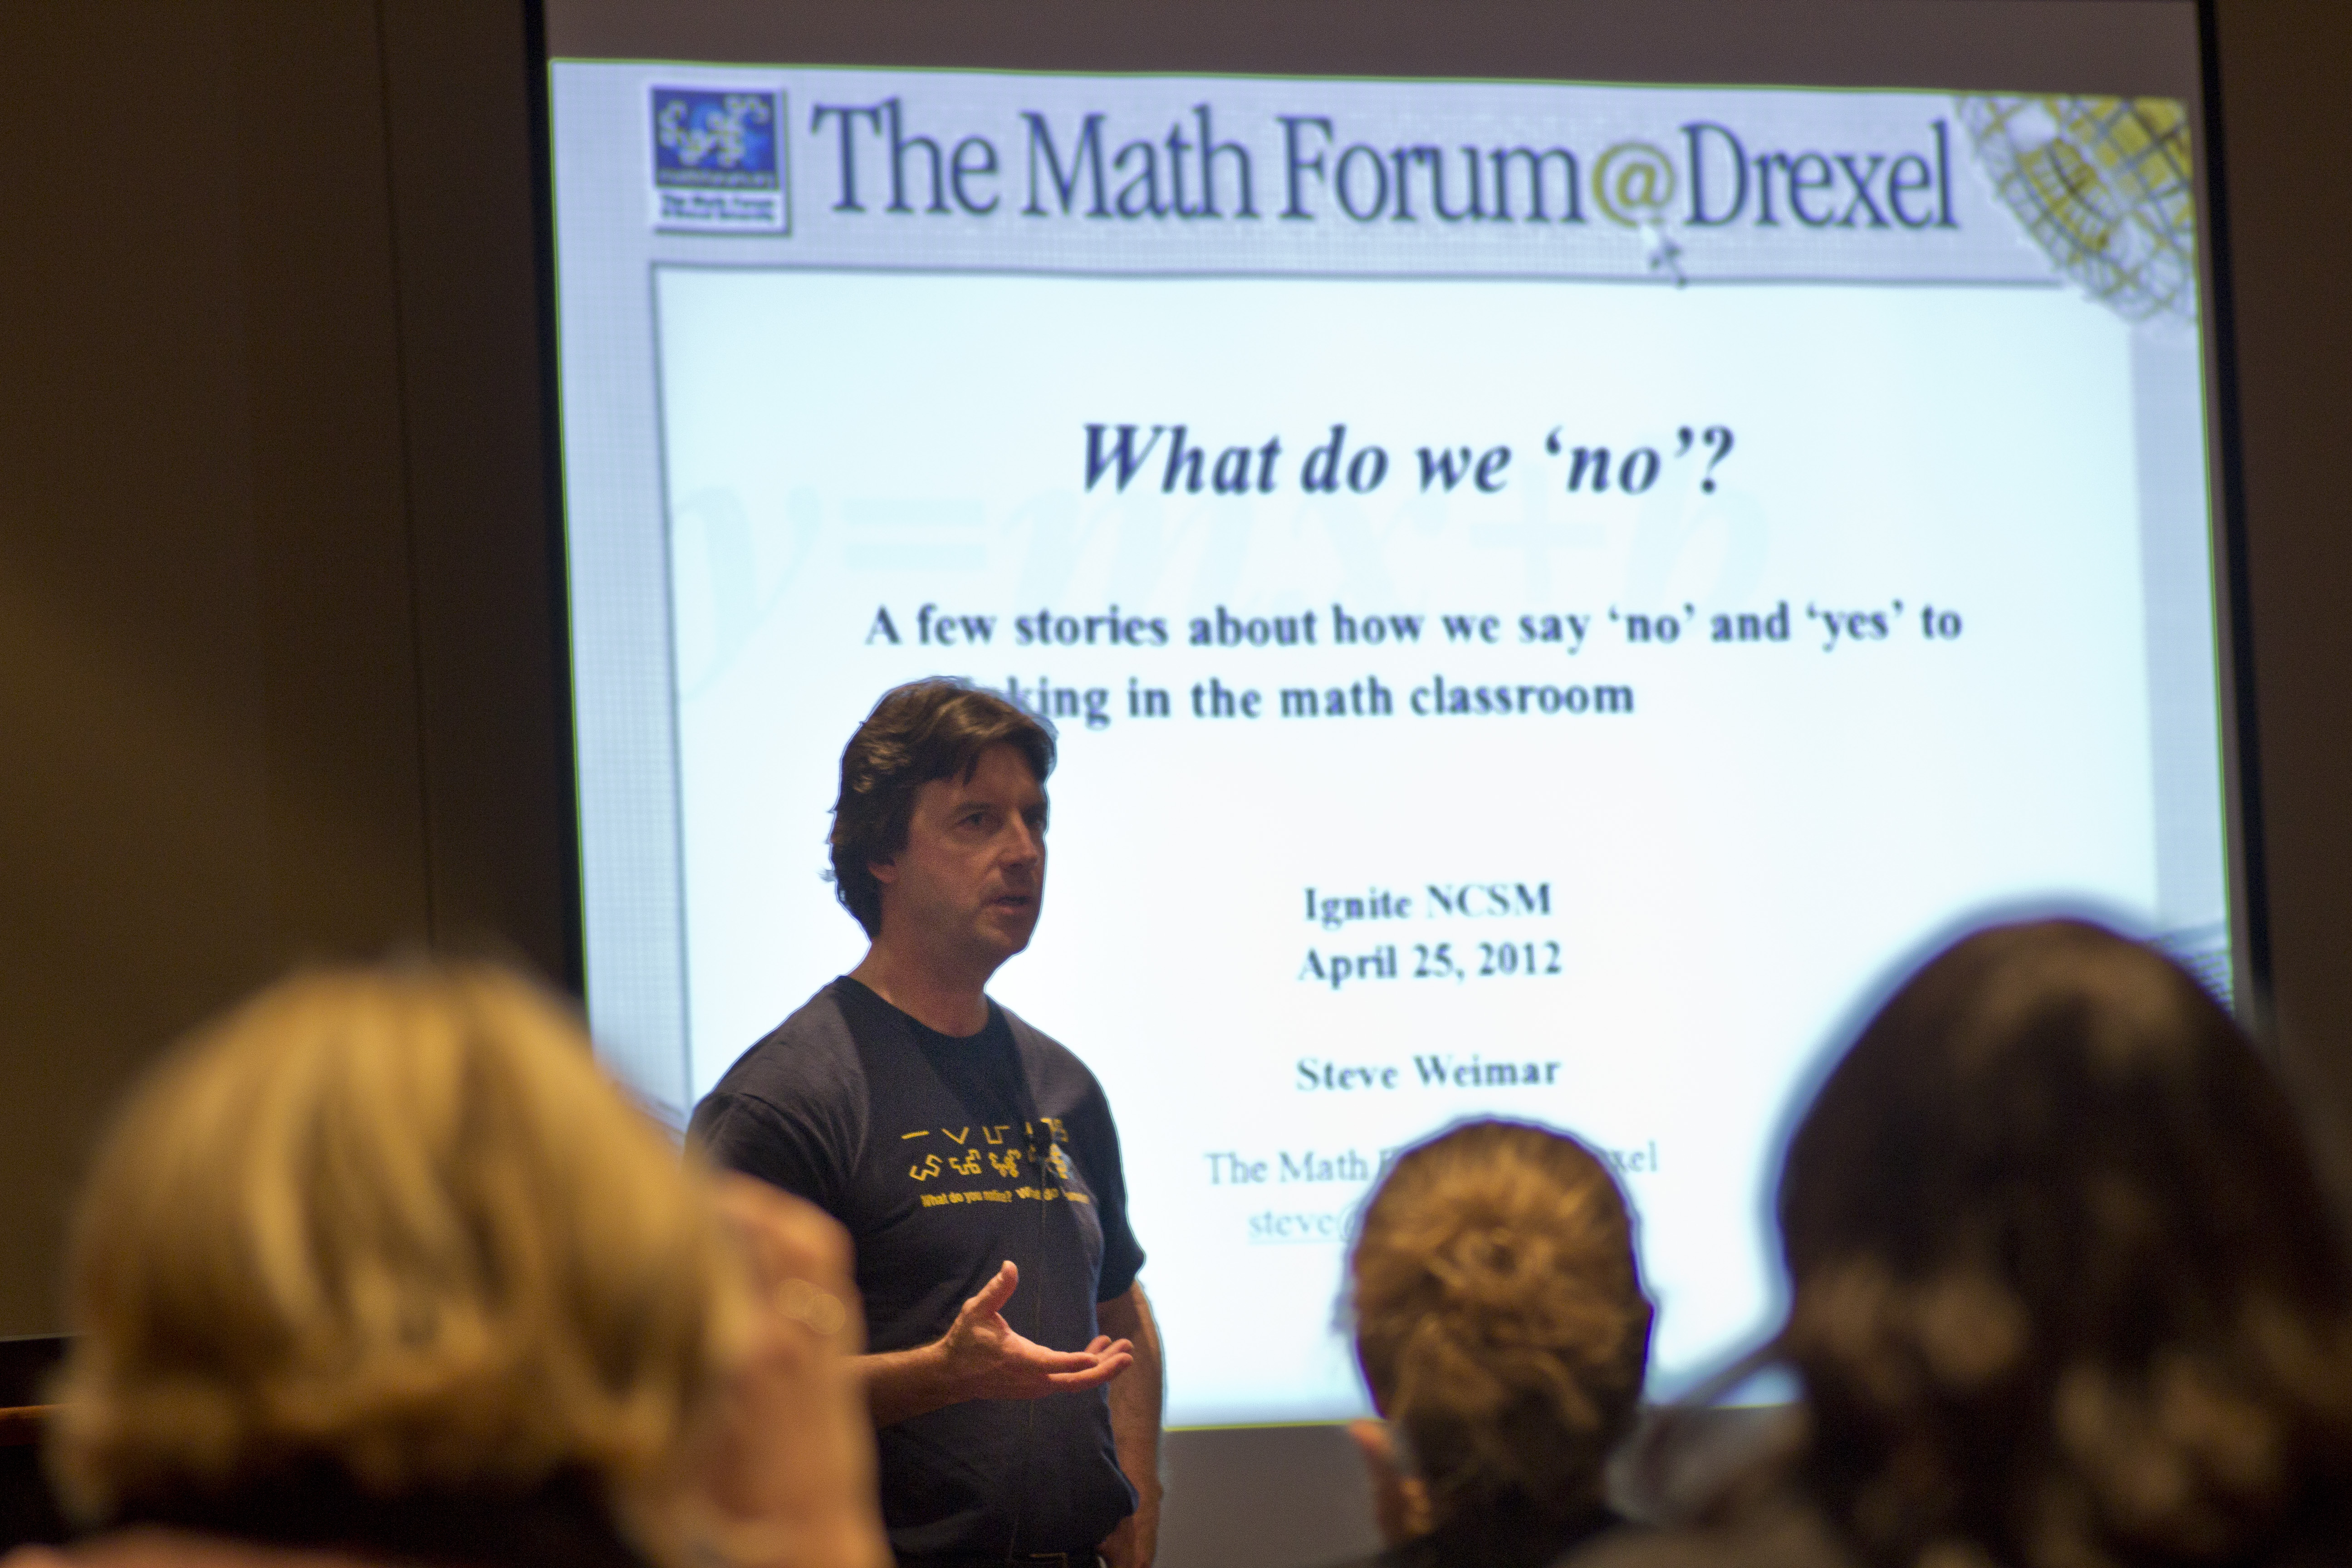 Steve Weimar at NCSM Ignite 2012